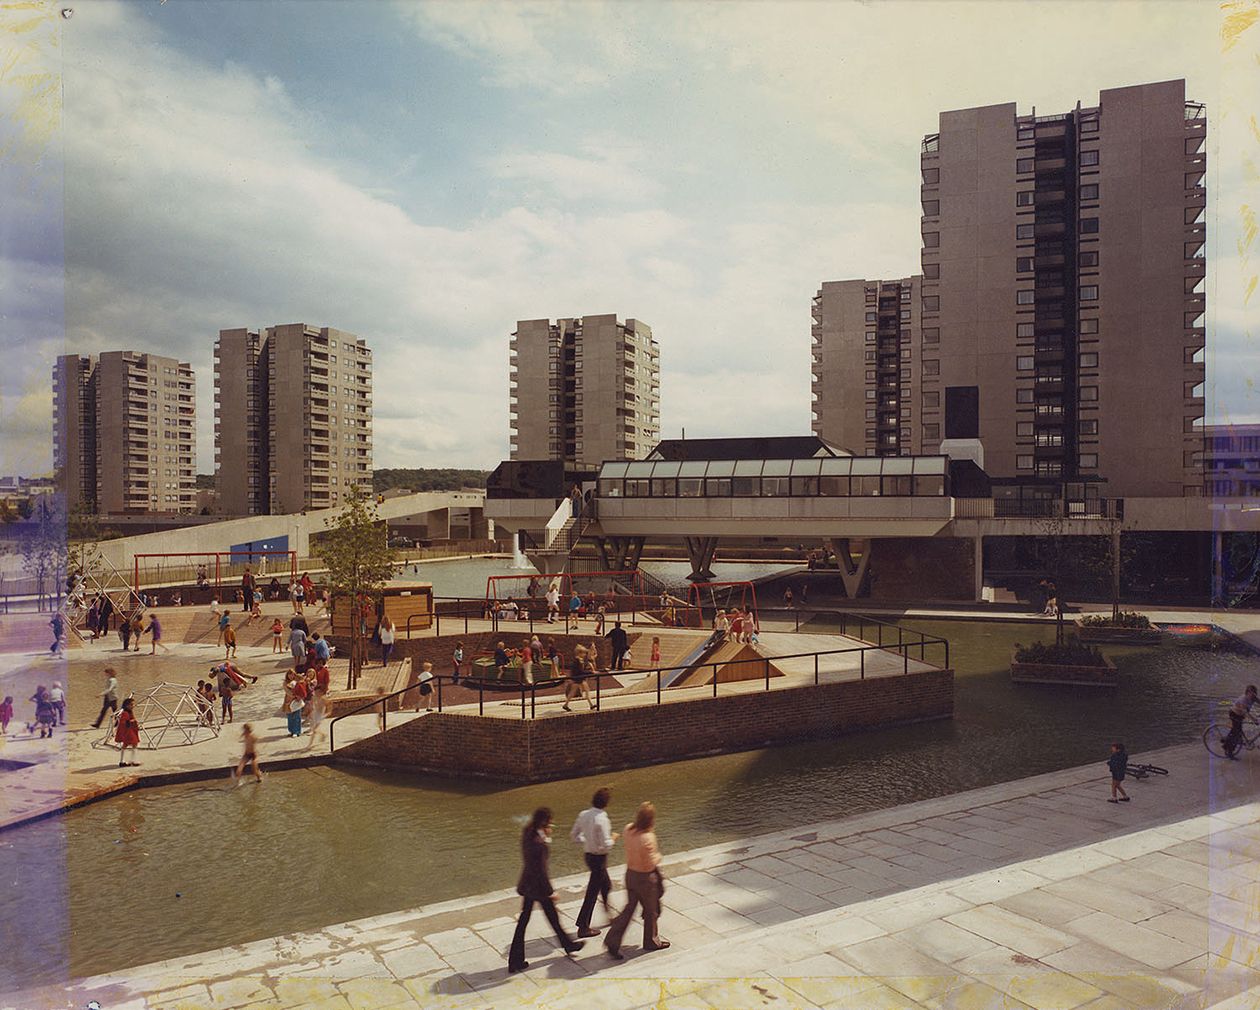 London Thamesmead: Children's playground and the Lakeside Health Centre, Tavy Bridge. 1973. (c) Bexley Local Studies & Archival Centre